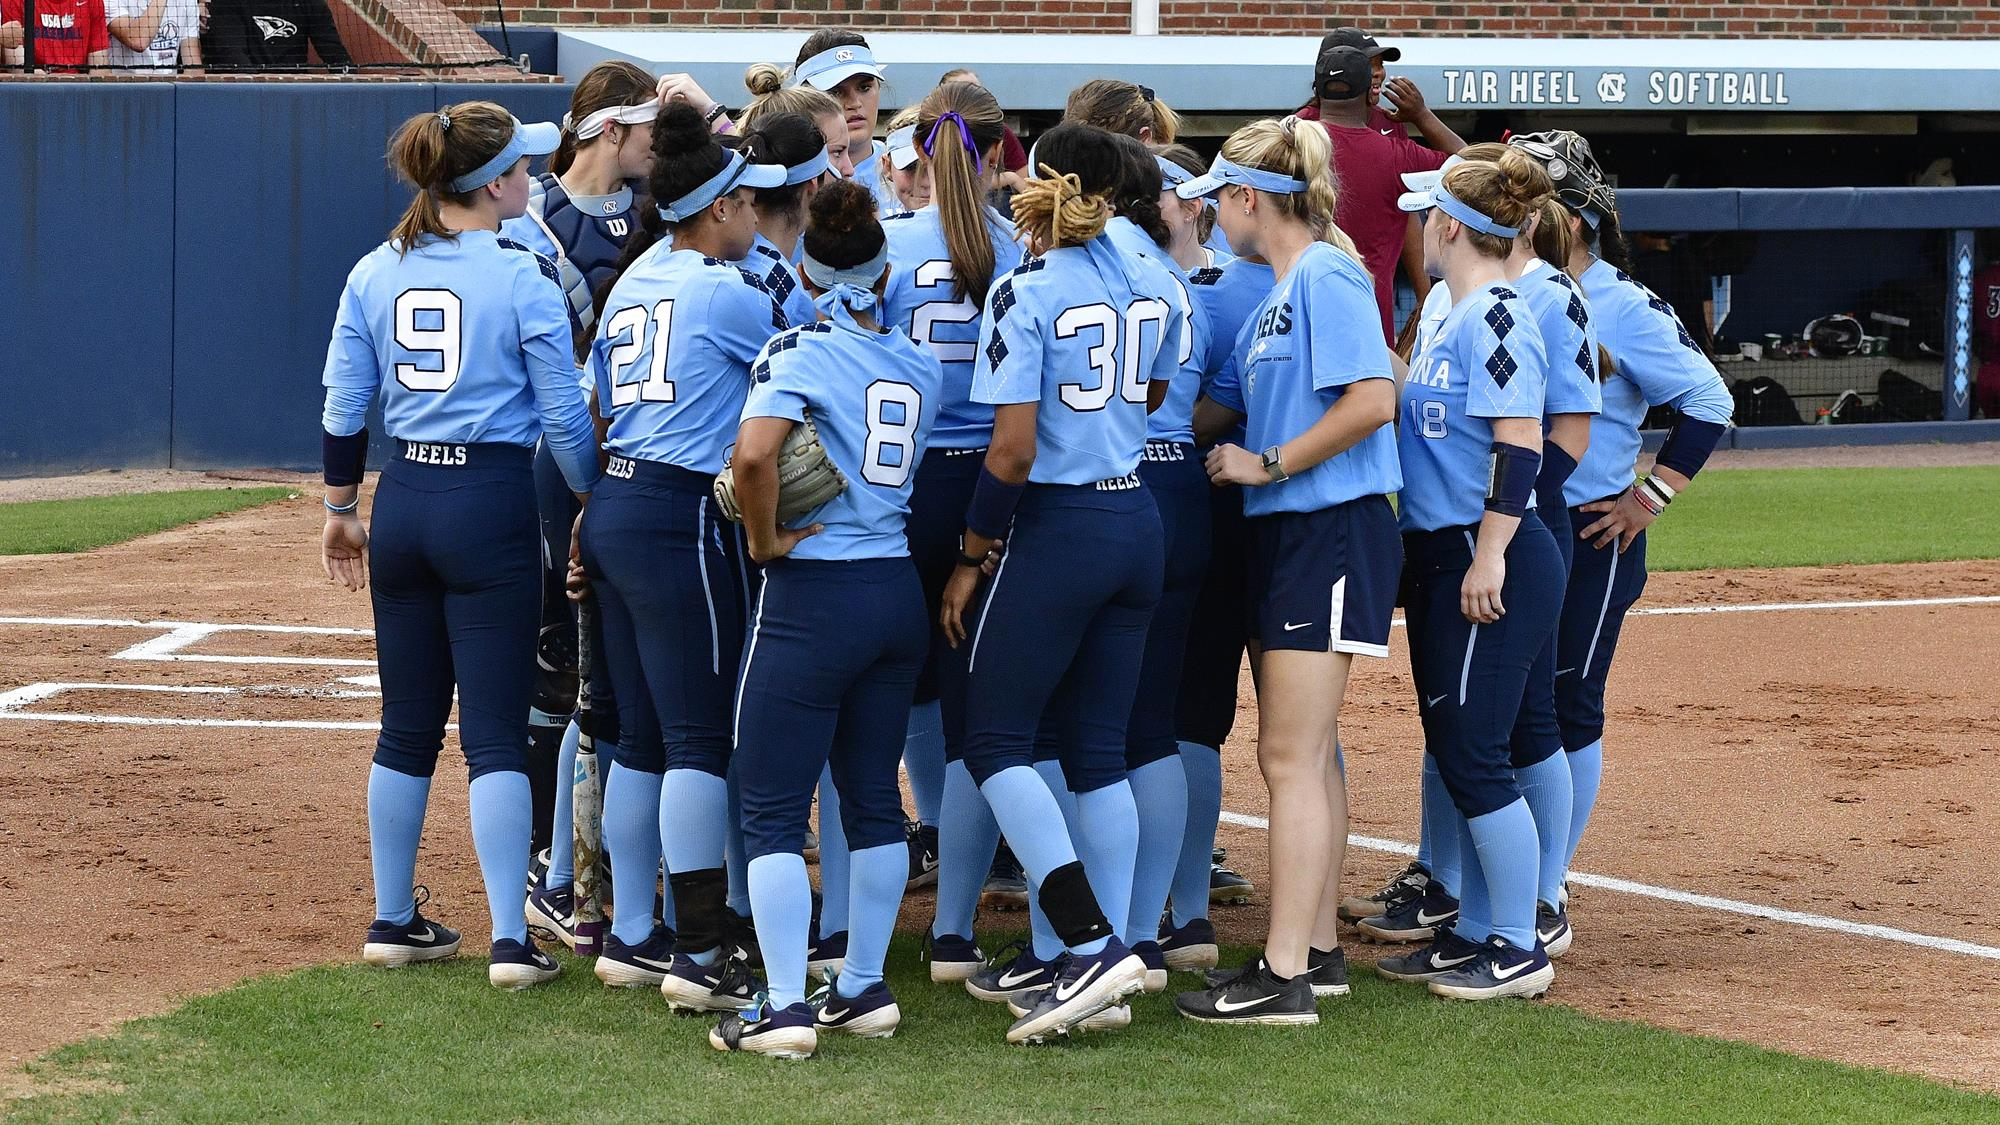 Seven Future Tar Heels Sign National Letters of Intent